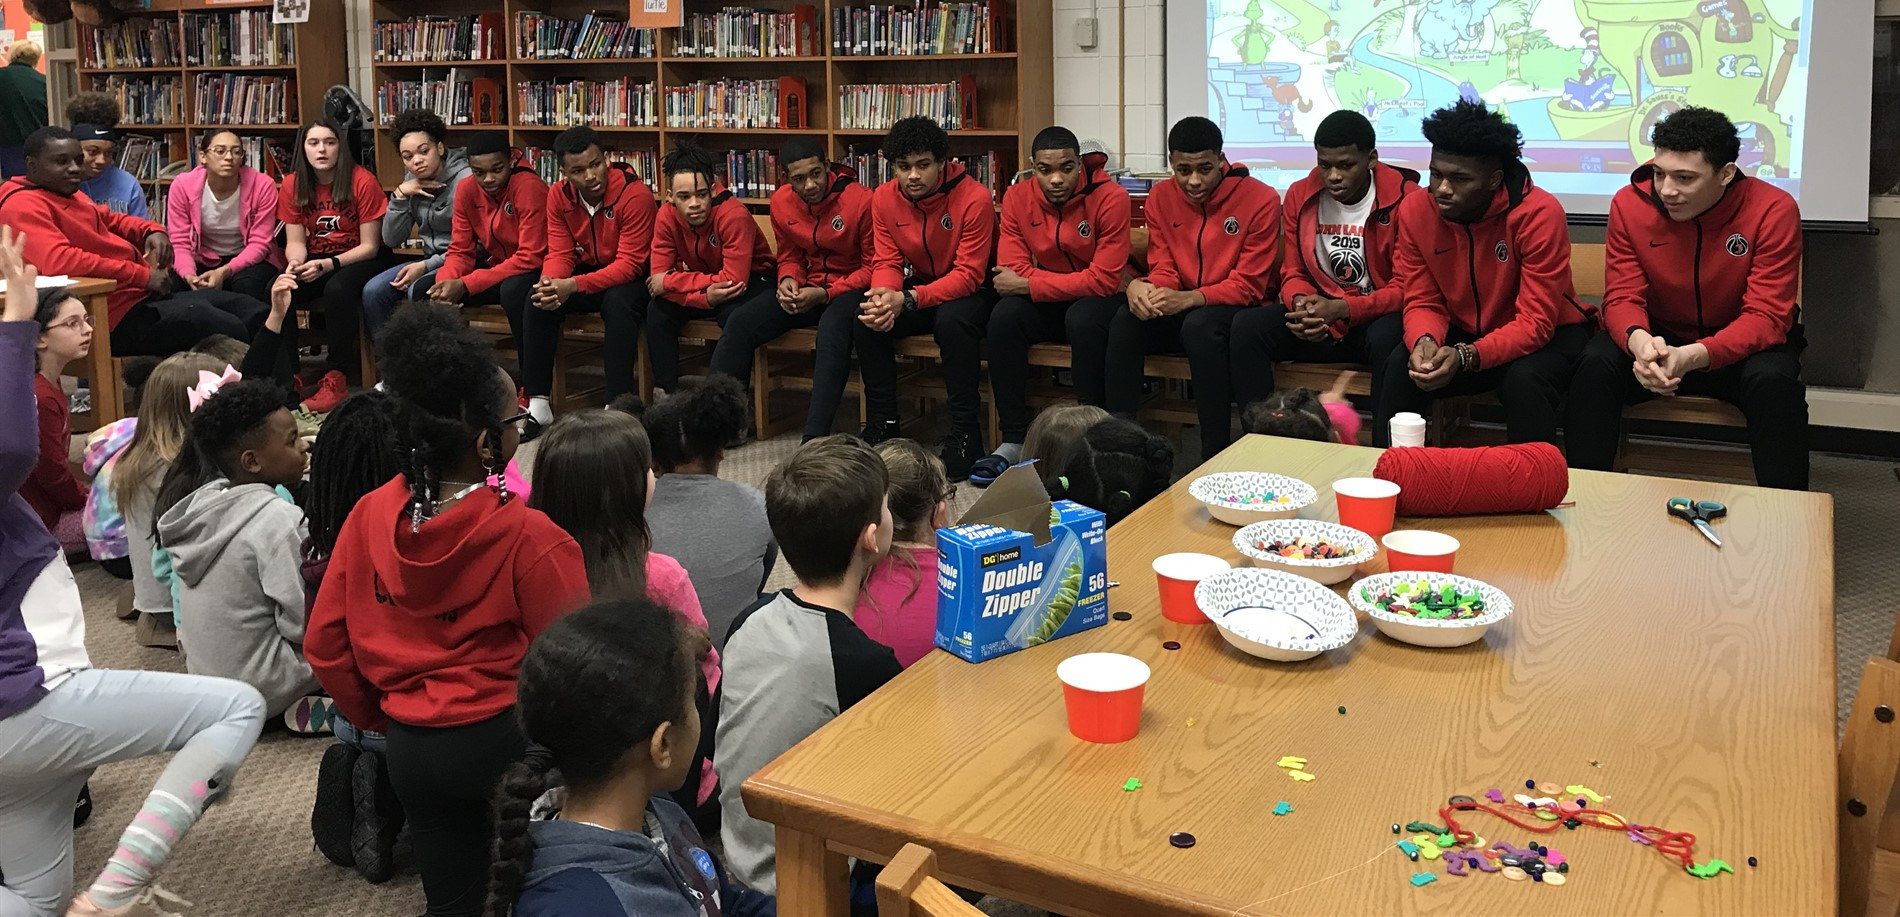 JHHS Boy and Girl Basketball Players talk to third grade and others about setting goals and working hard in school while also making Seuss crafts with them.